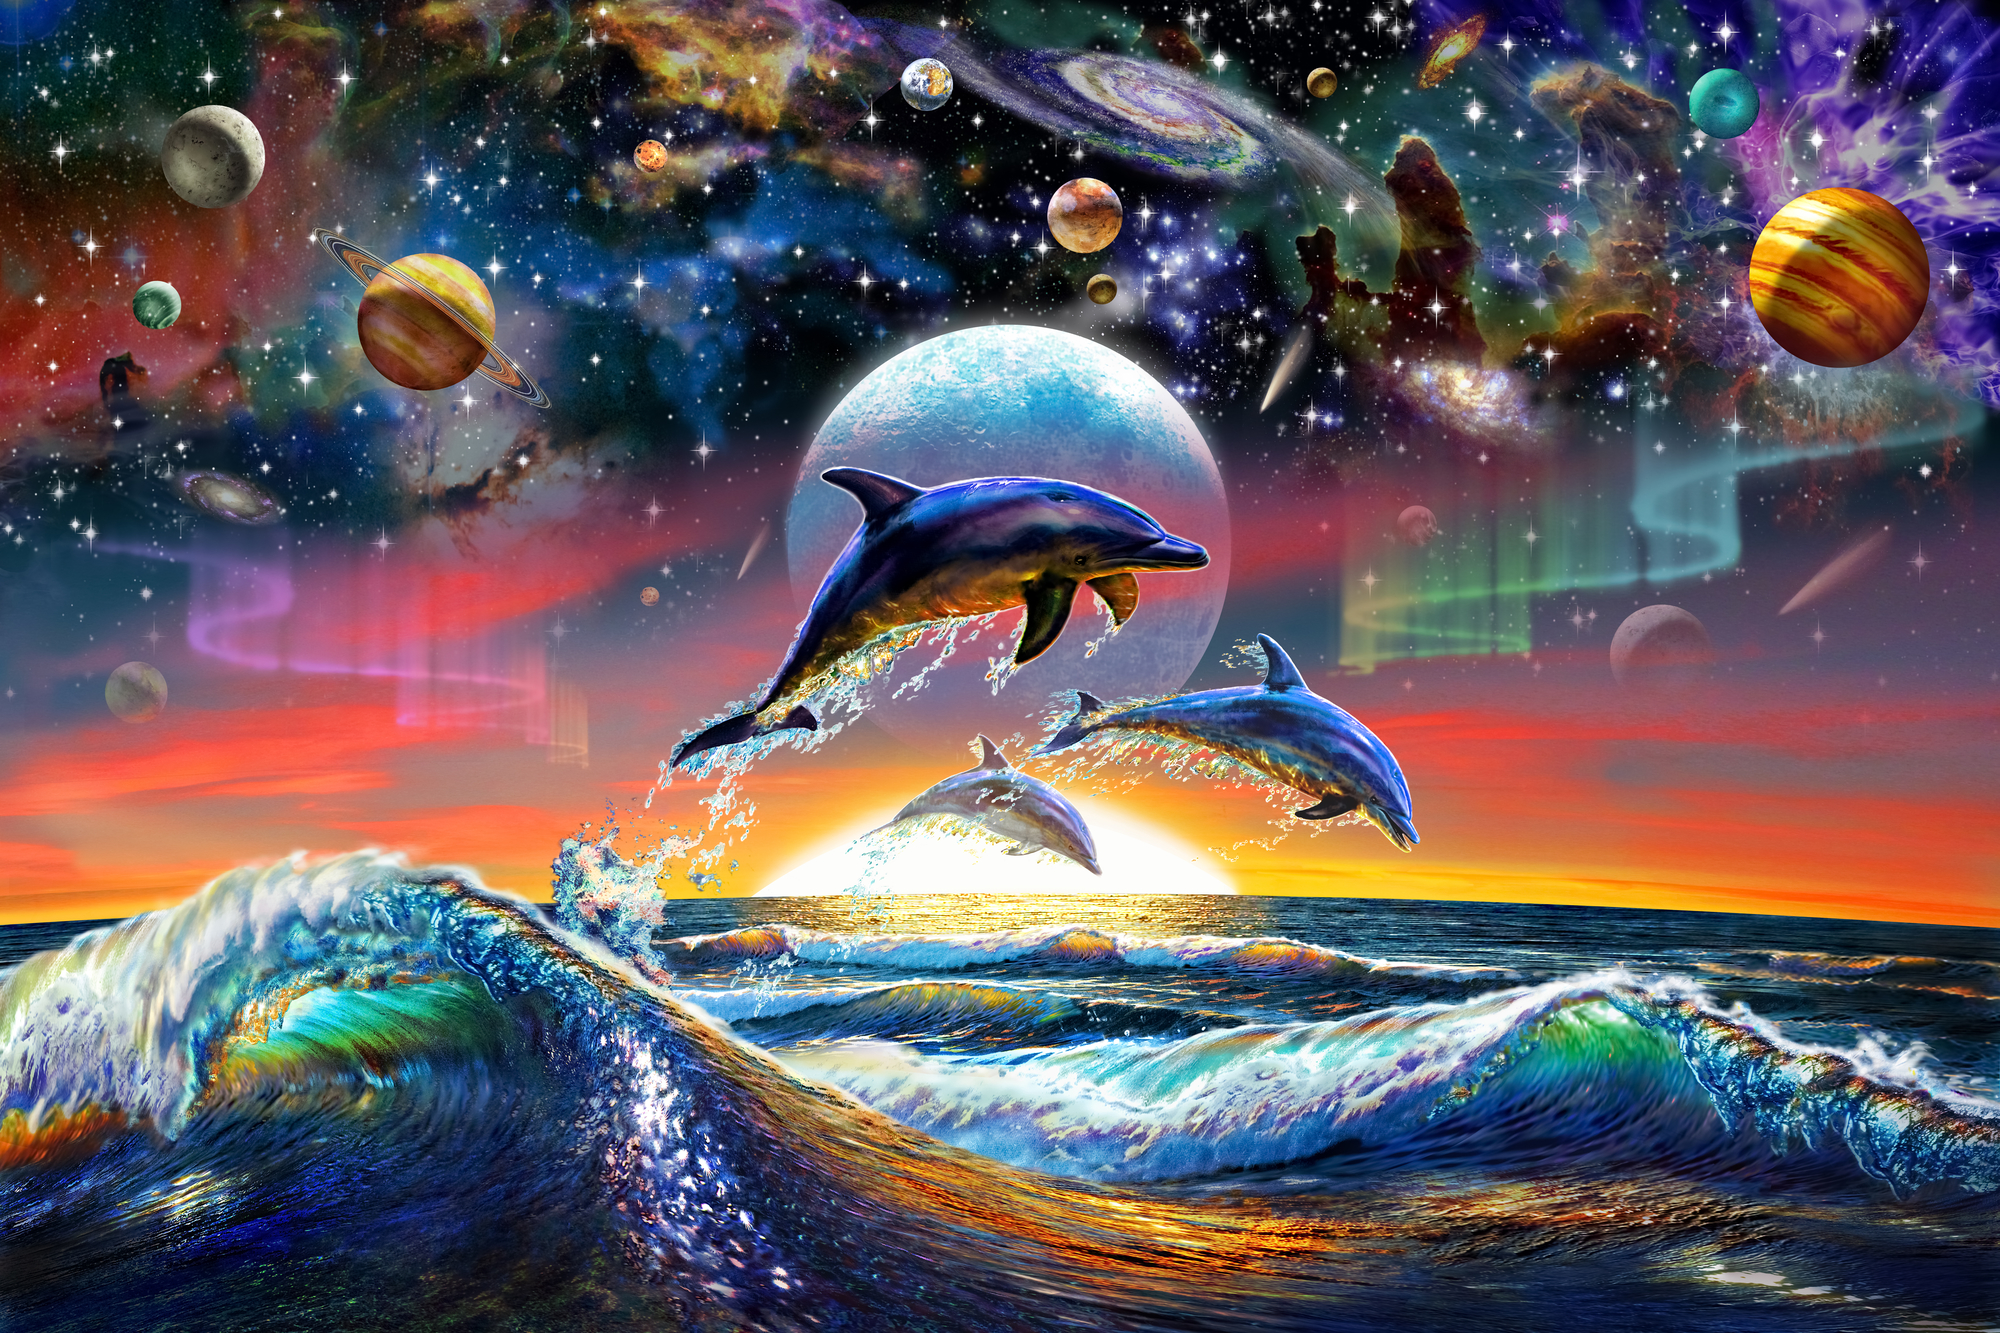 Dolphin Wallpaper Wall Murals Wallsauce USA